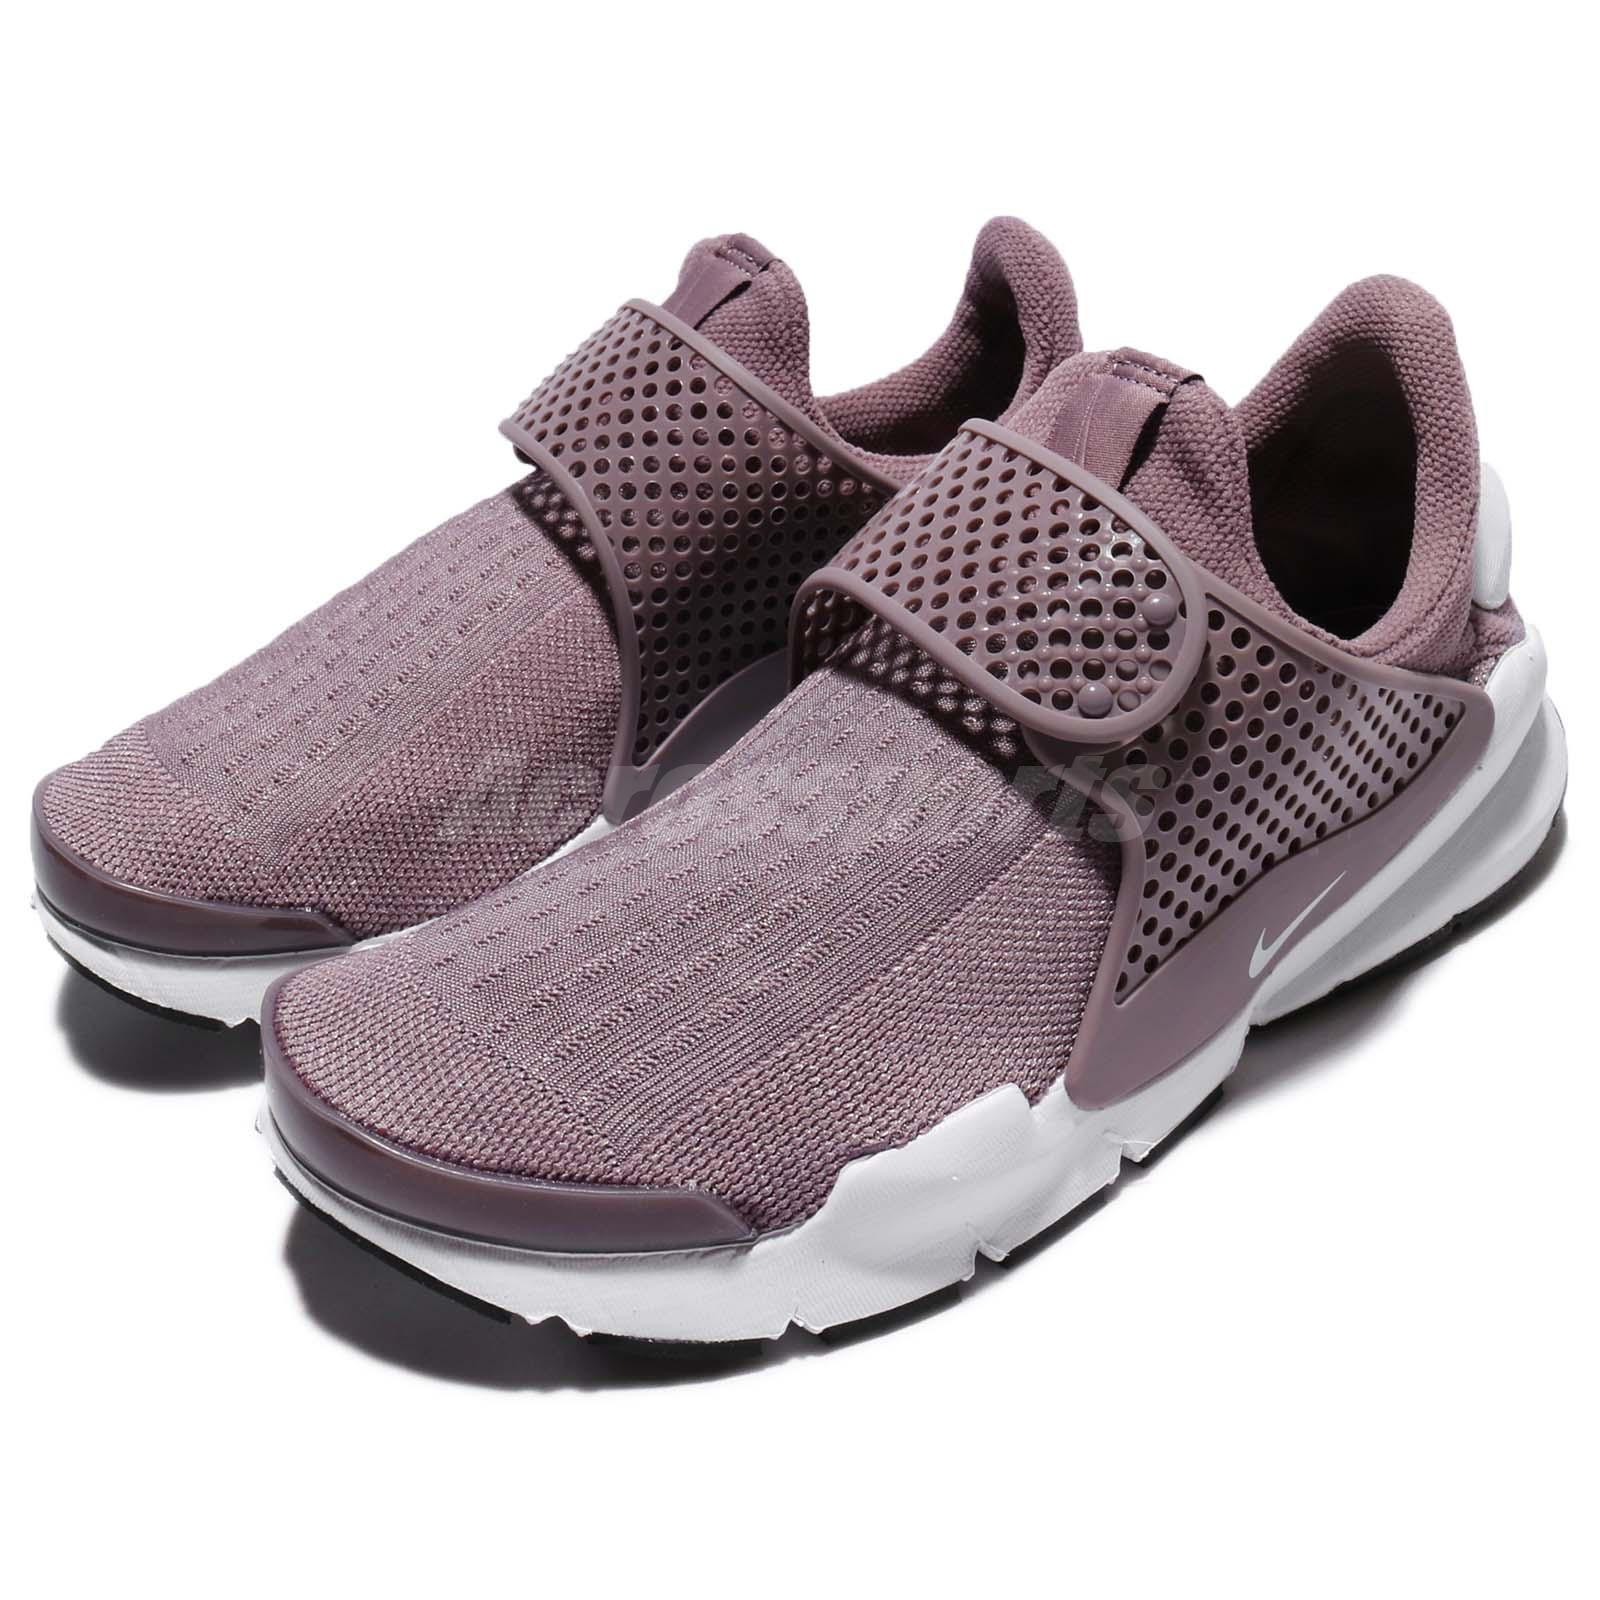 uk availability 20b45 7c6b5 Details about Wmns Nike Sock Dart Taupe Grey White Women Shoes Sneakers  Slip-On 848475-201